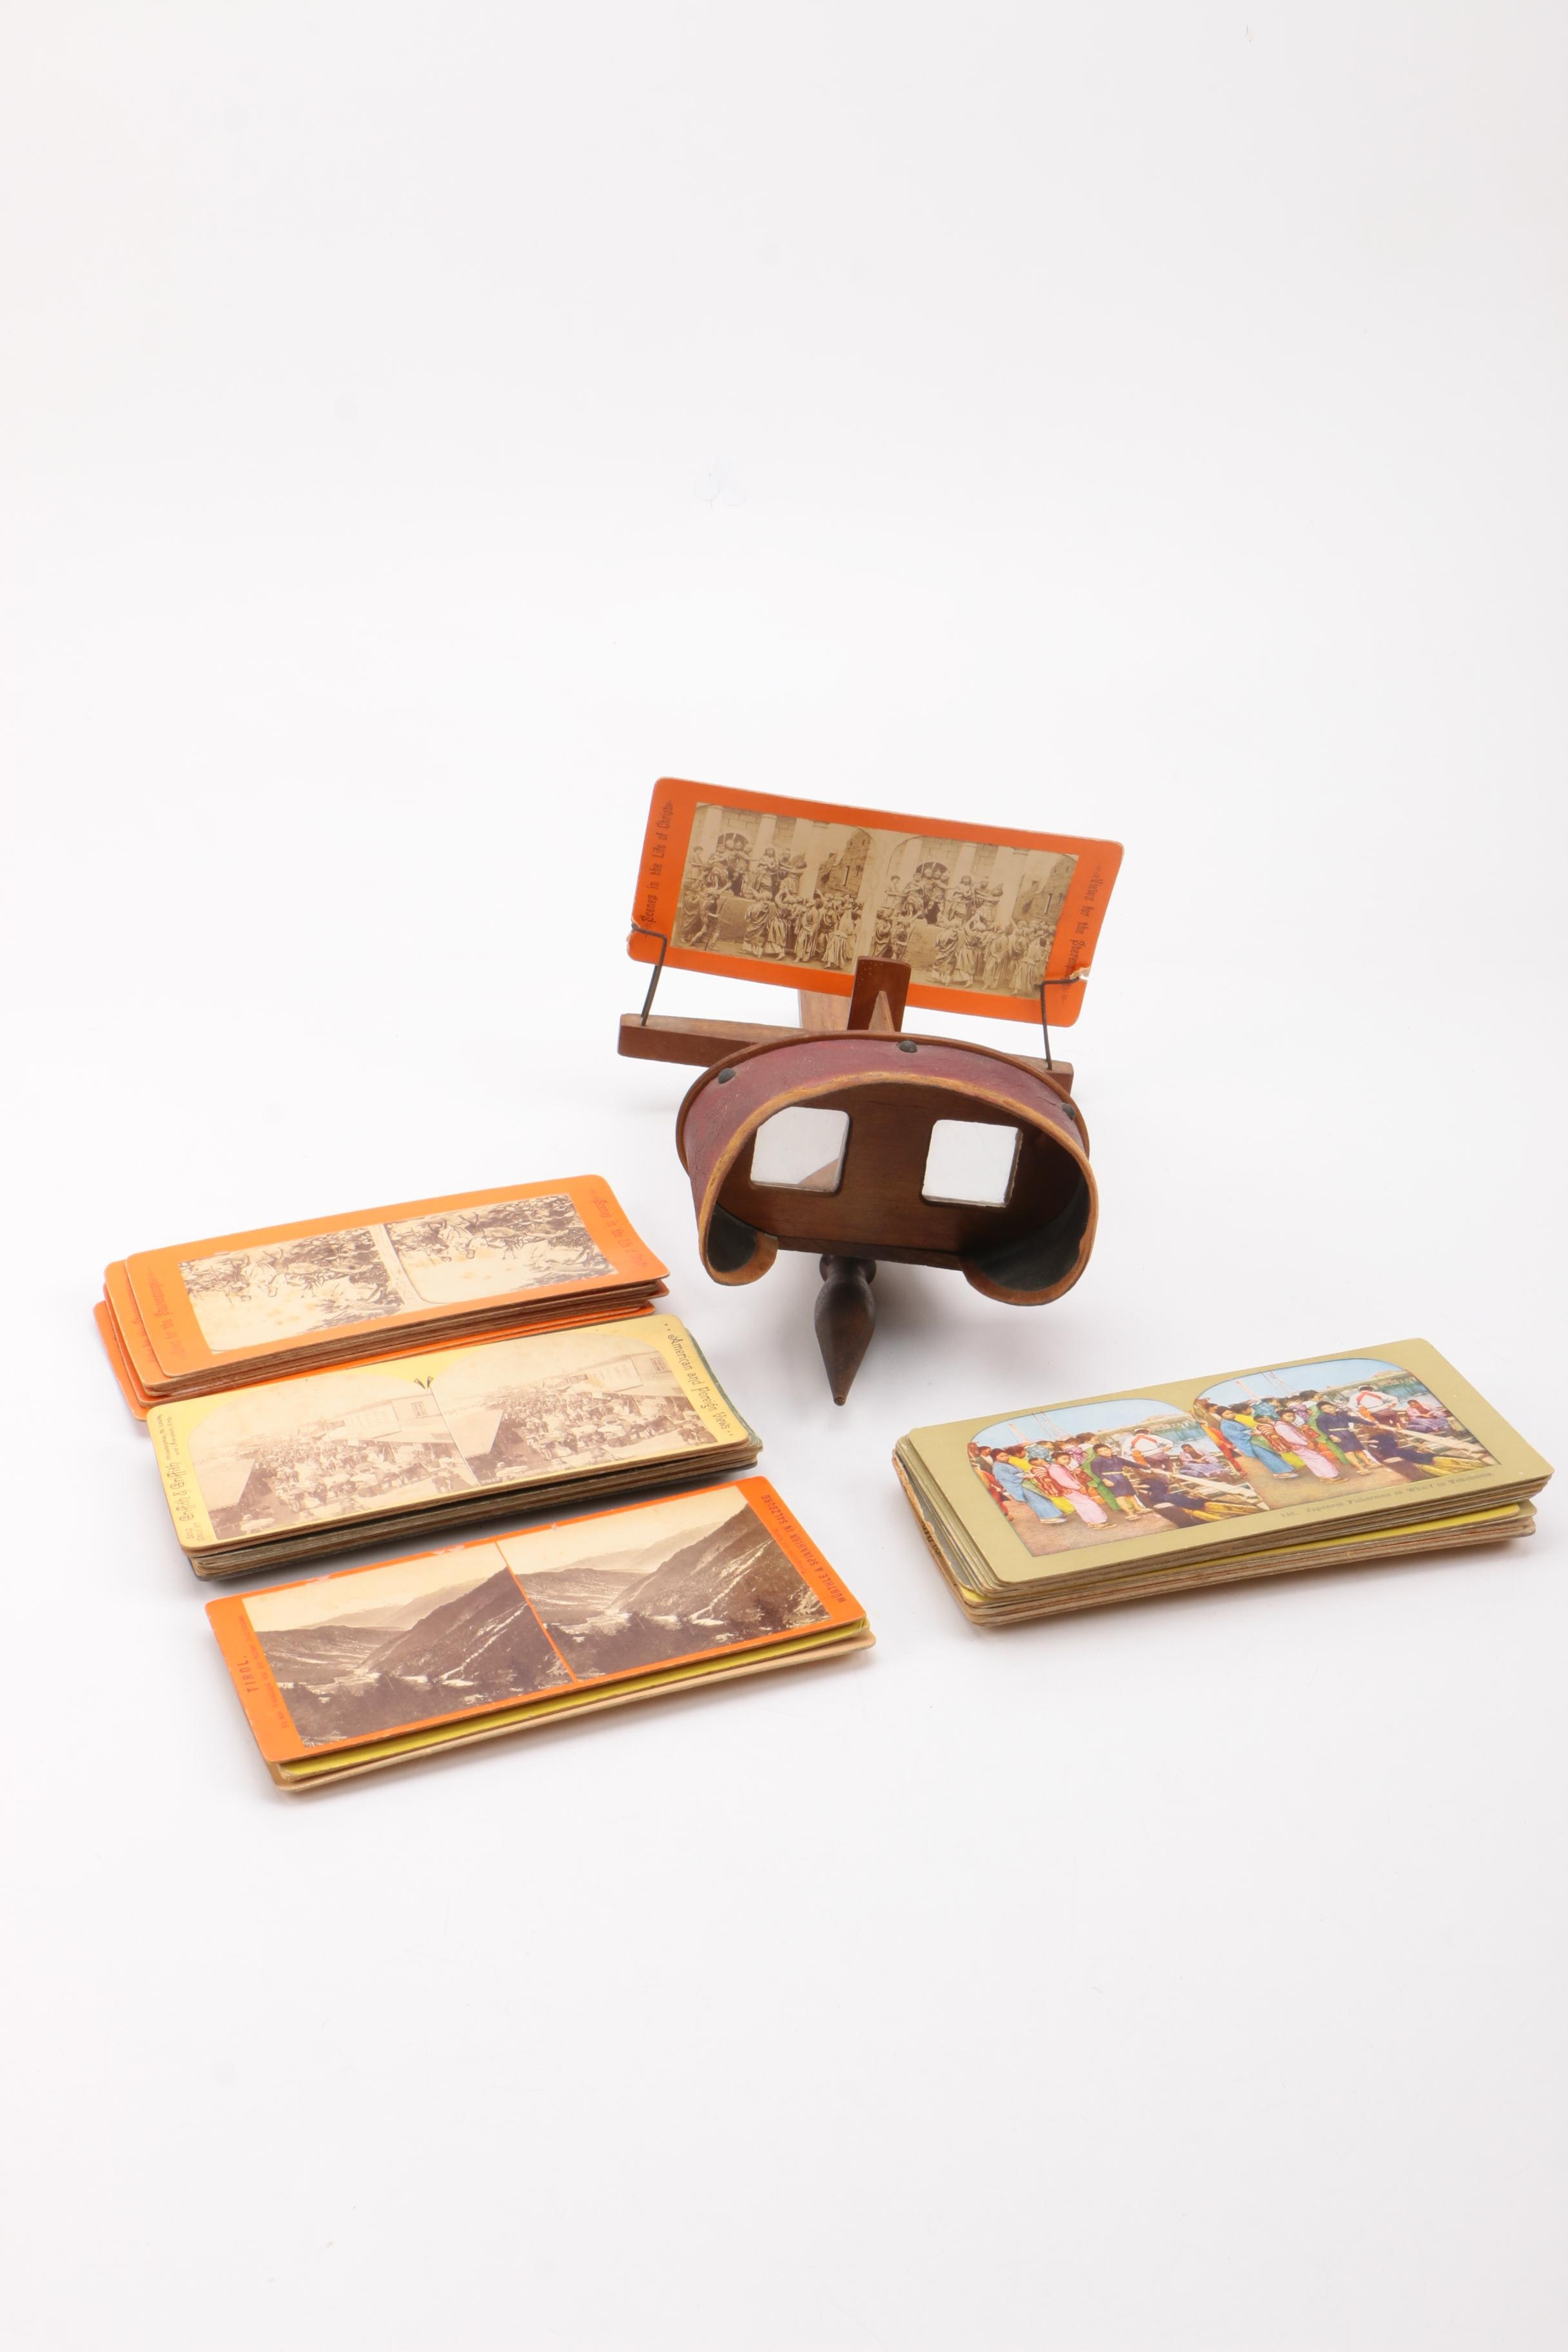 Antique Stereoscope and Viewing Cards